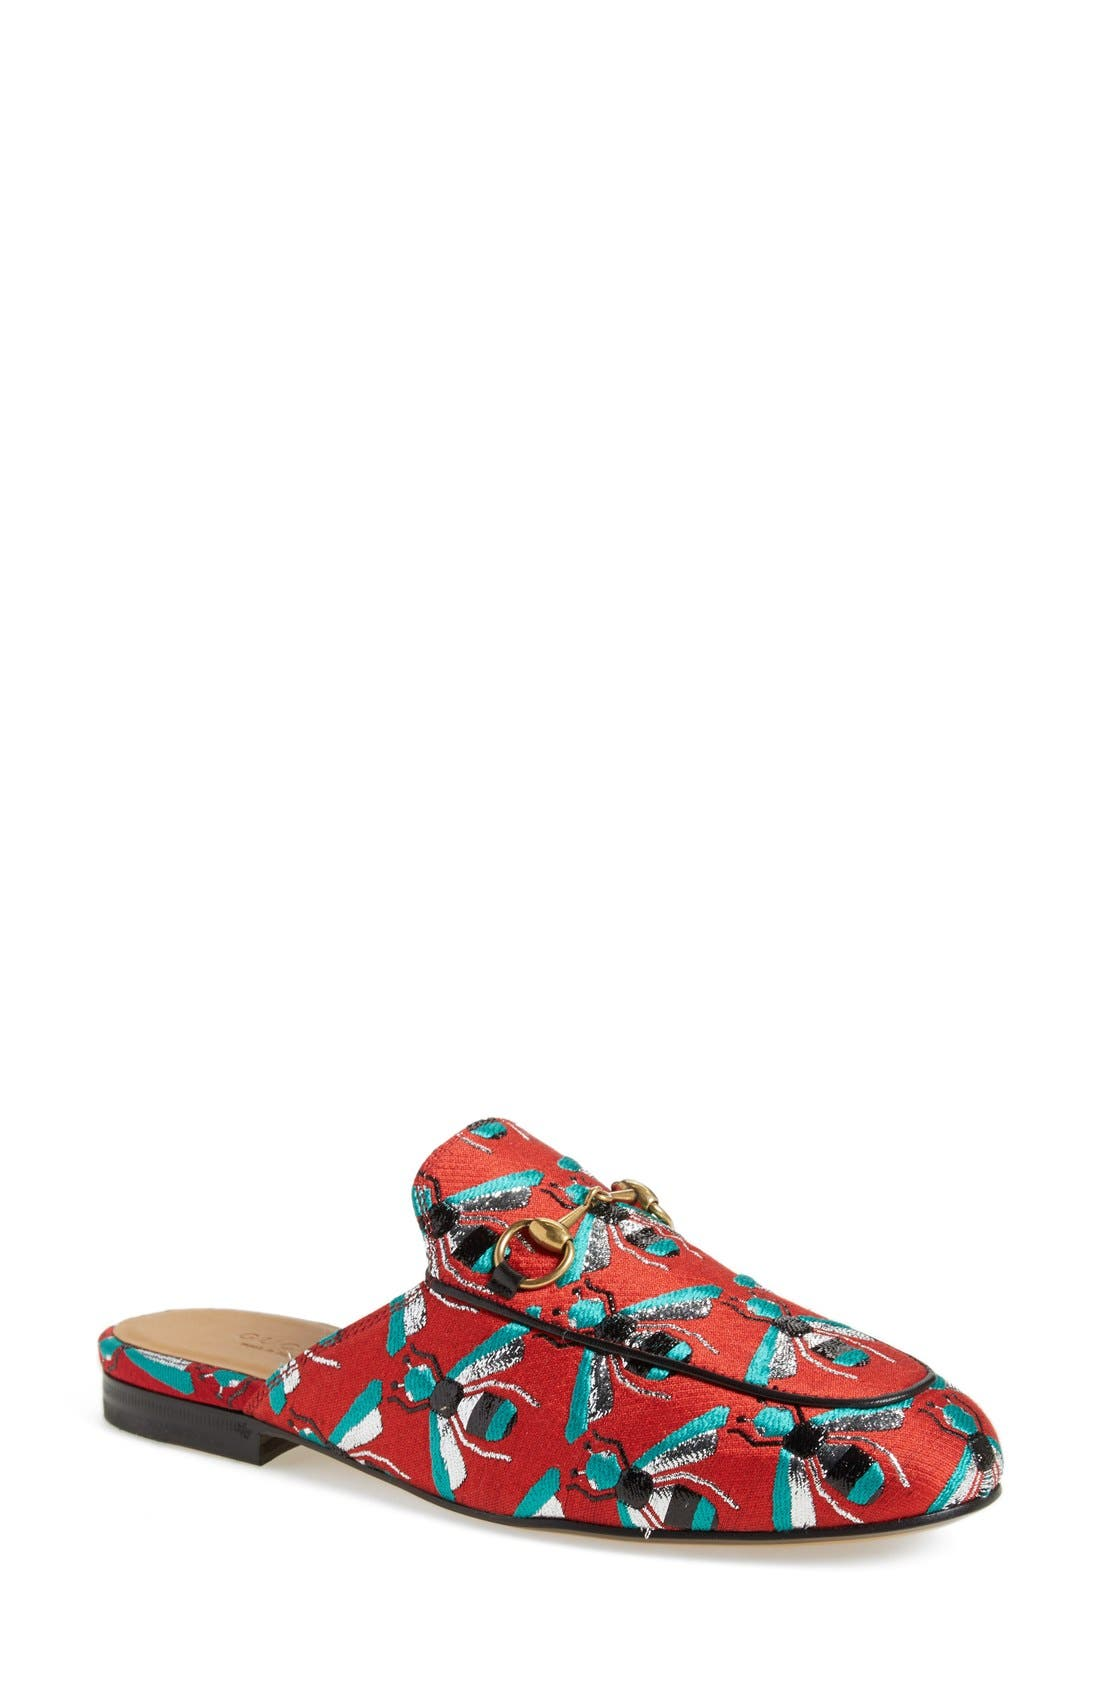 Main Image - Gucci 'Princetown' Print Mule Loafer (Women)